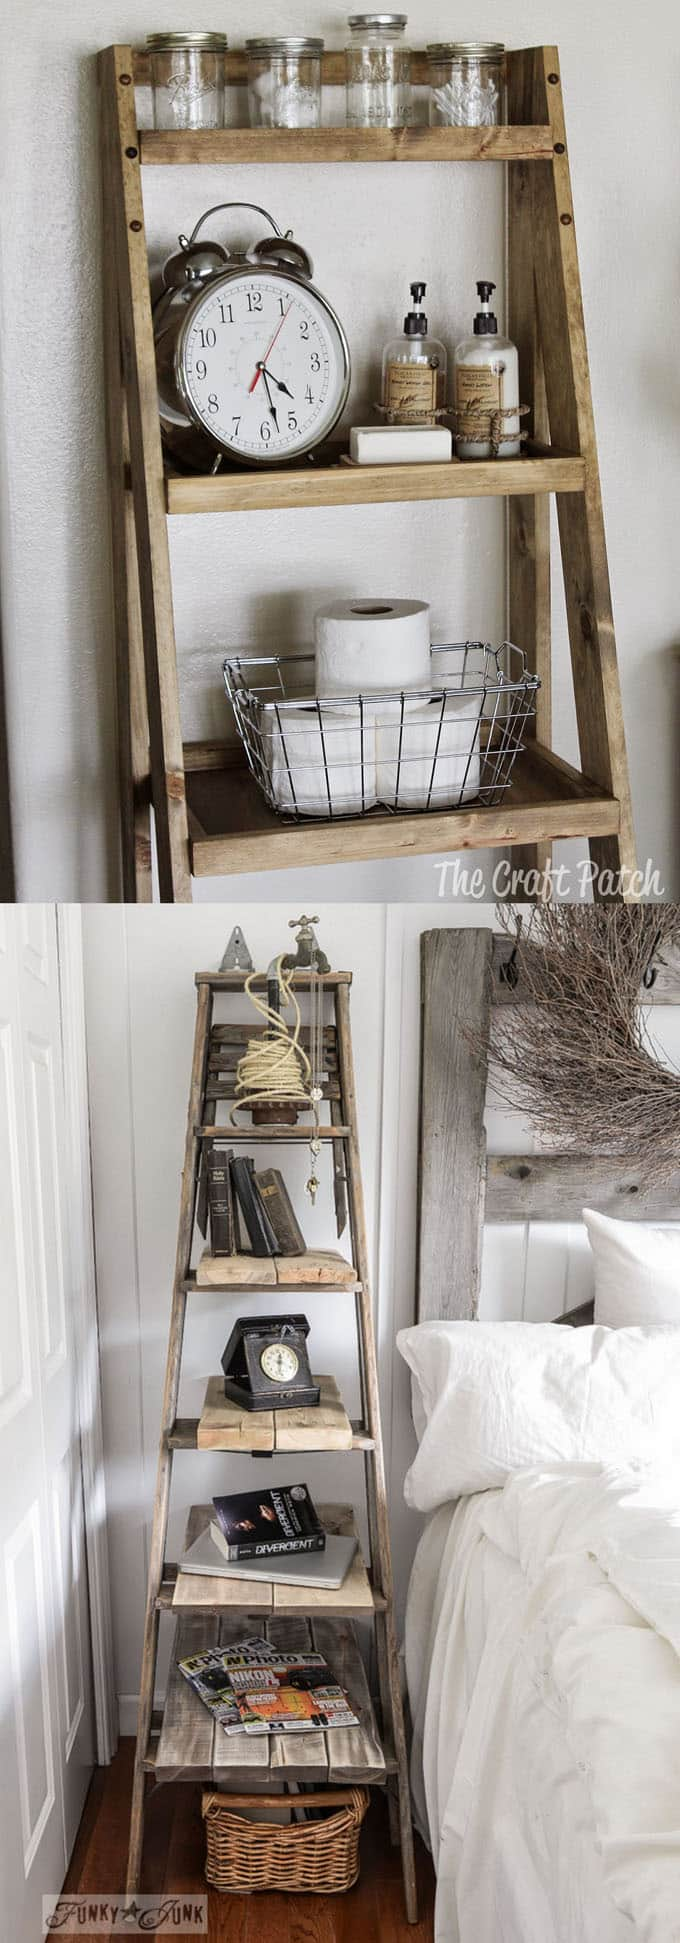 fixer upper style home decor ideas using ladder and vintage finds